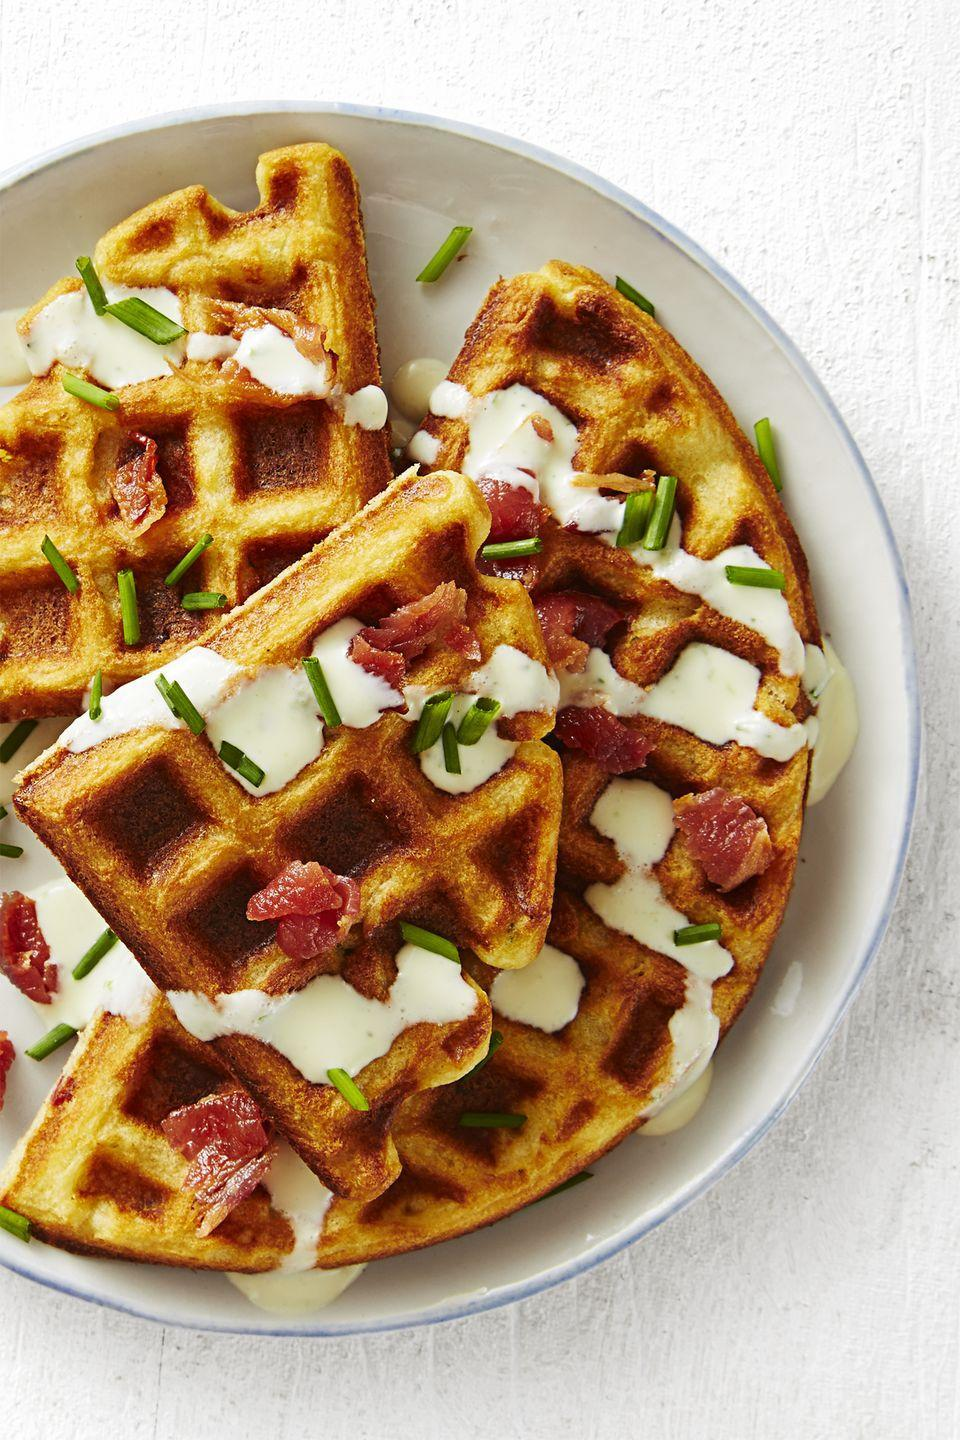 """<p>Proof that you can have your ranch and eat it ... for breakfast on Father's Day. </p><p><em><a href=""""https://www.goodhousekeeping.com/food-recipes/a45223/savory-bacon-chive-waffles-recipe/"""" rel=""""nofollow noopener"""" target=""""_blank"""" data-ylk=""""slk:Get the recipe for Savory Bacon and Chive Waffles »"""" class=""""link rapid-noclick-resp"""">Get the recipe for Savory Bacon and Chive Waffles »</a></em></p>"""